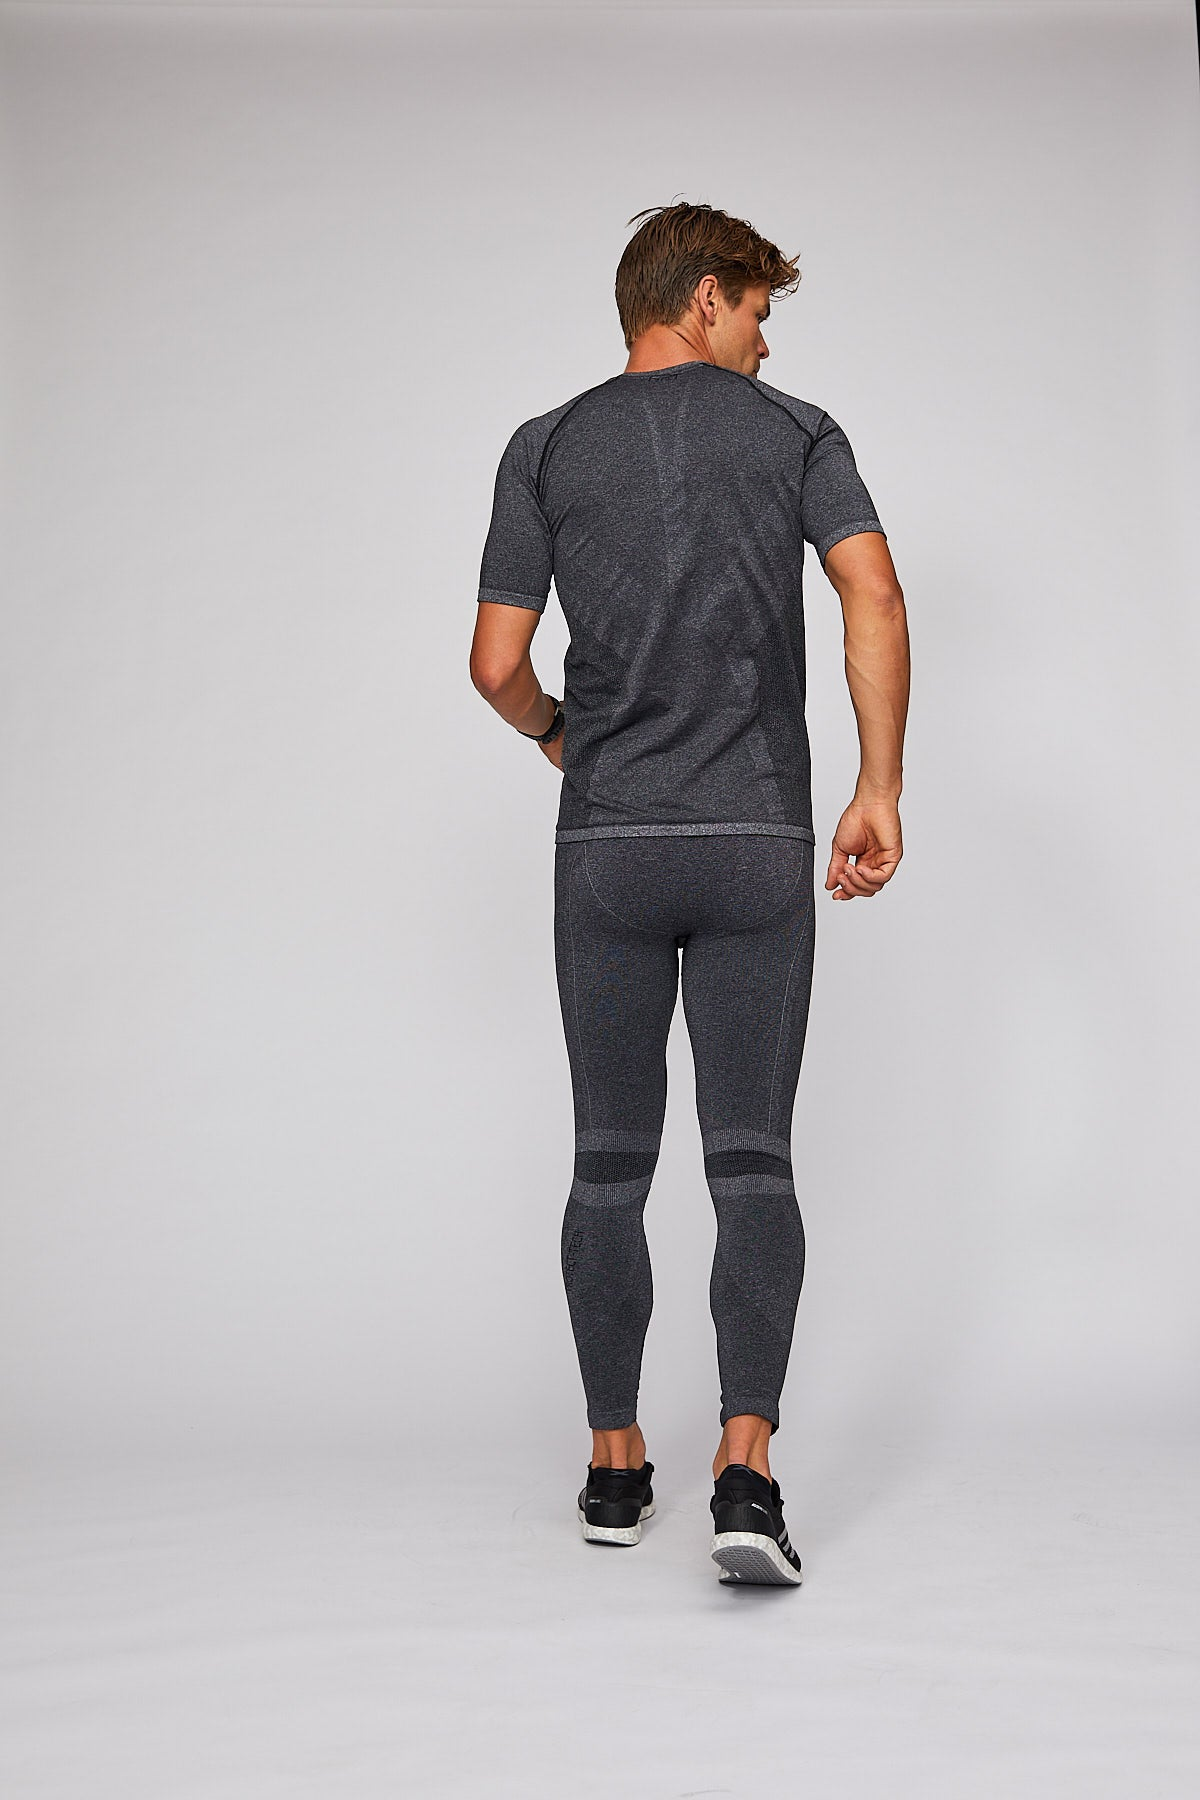 PROTECT-TECH™ TIGHTS - MENS